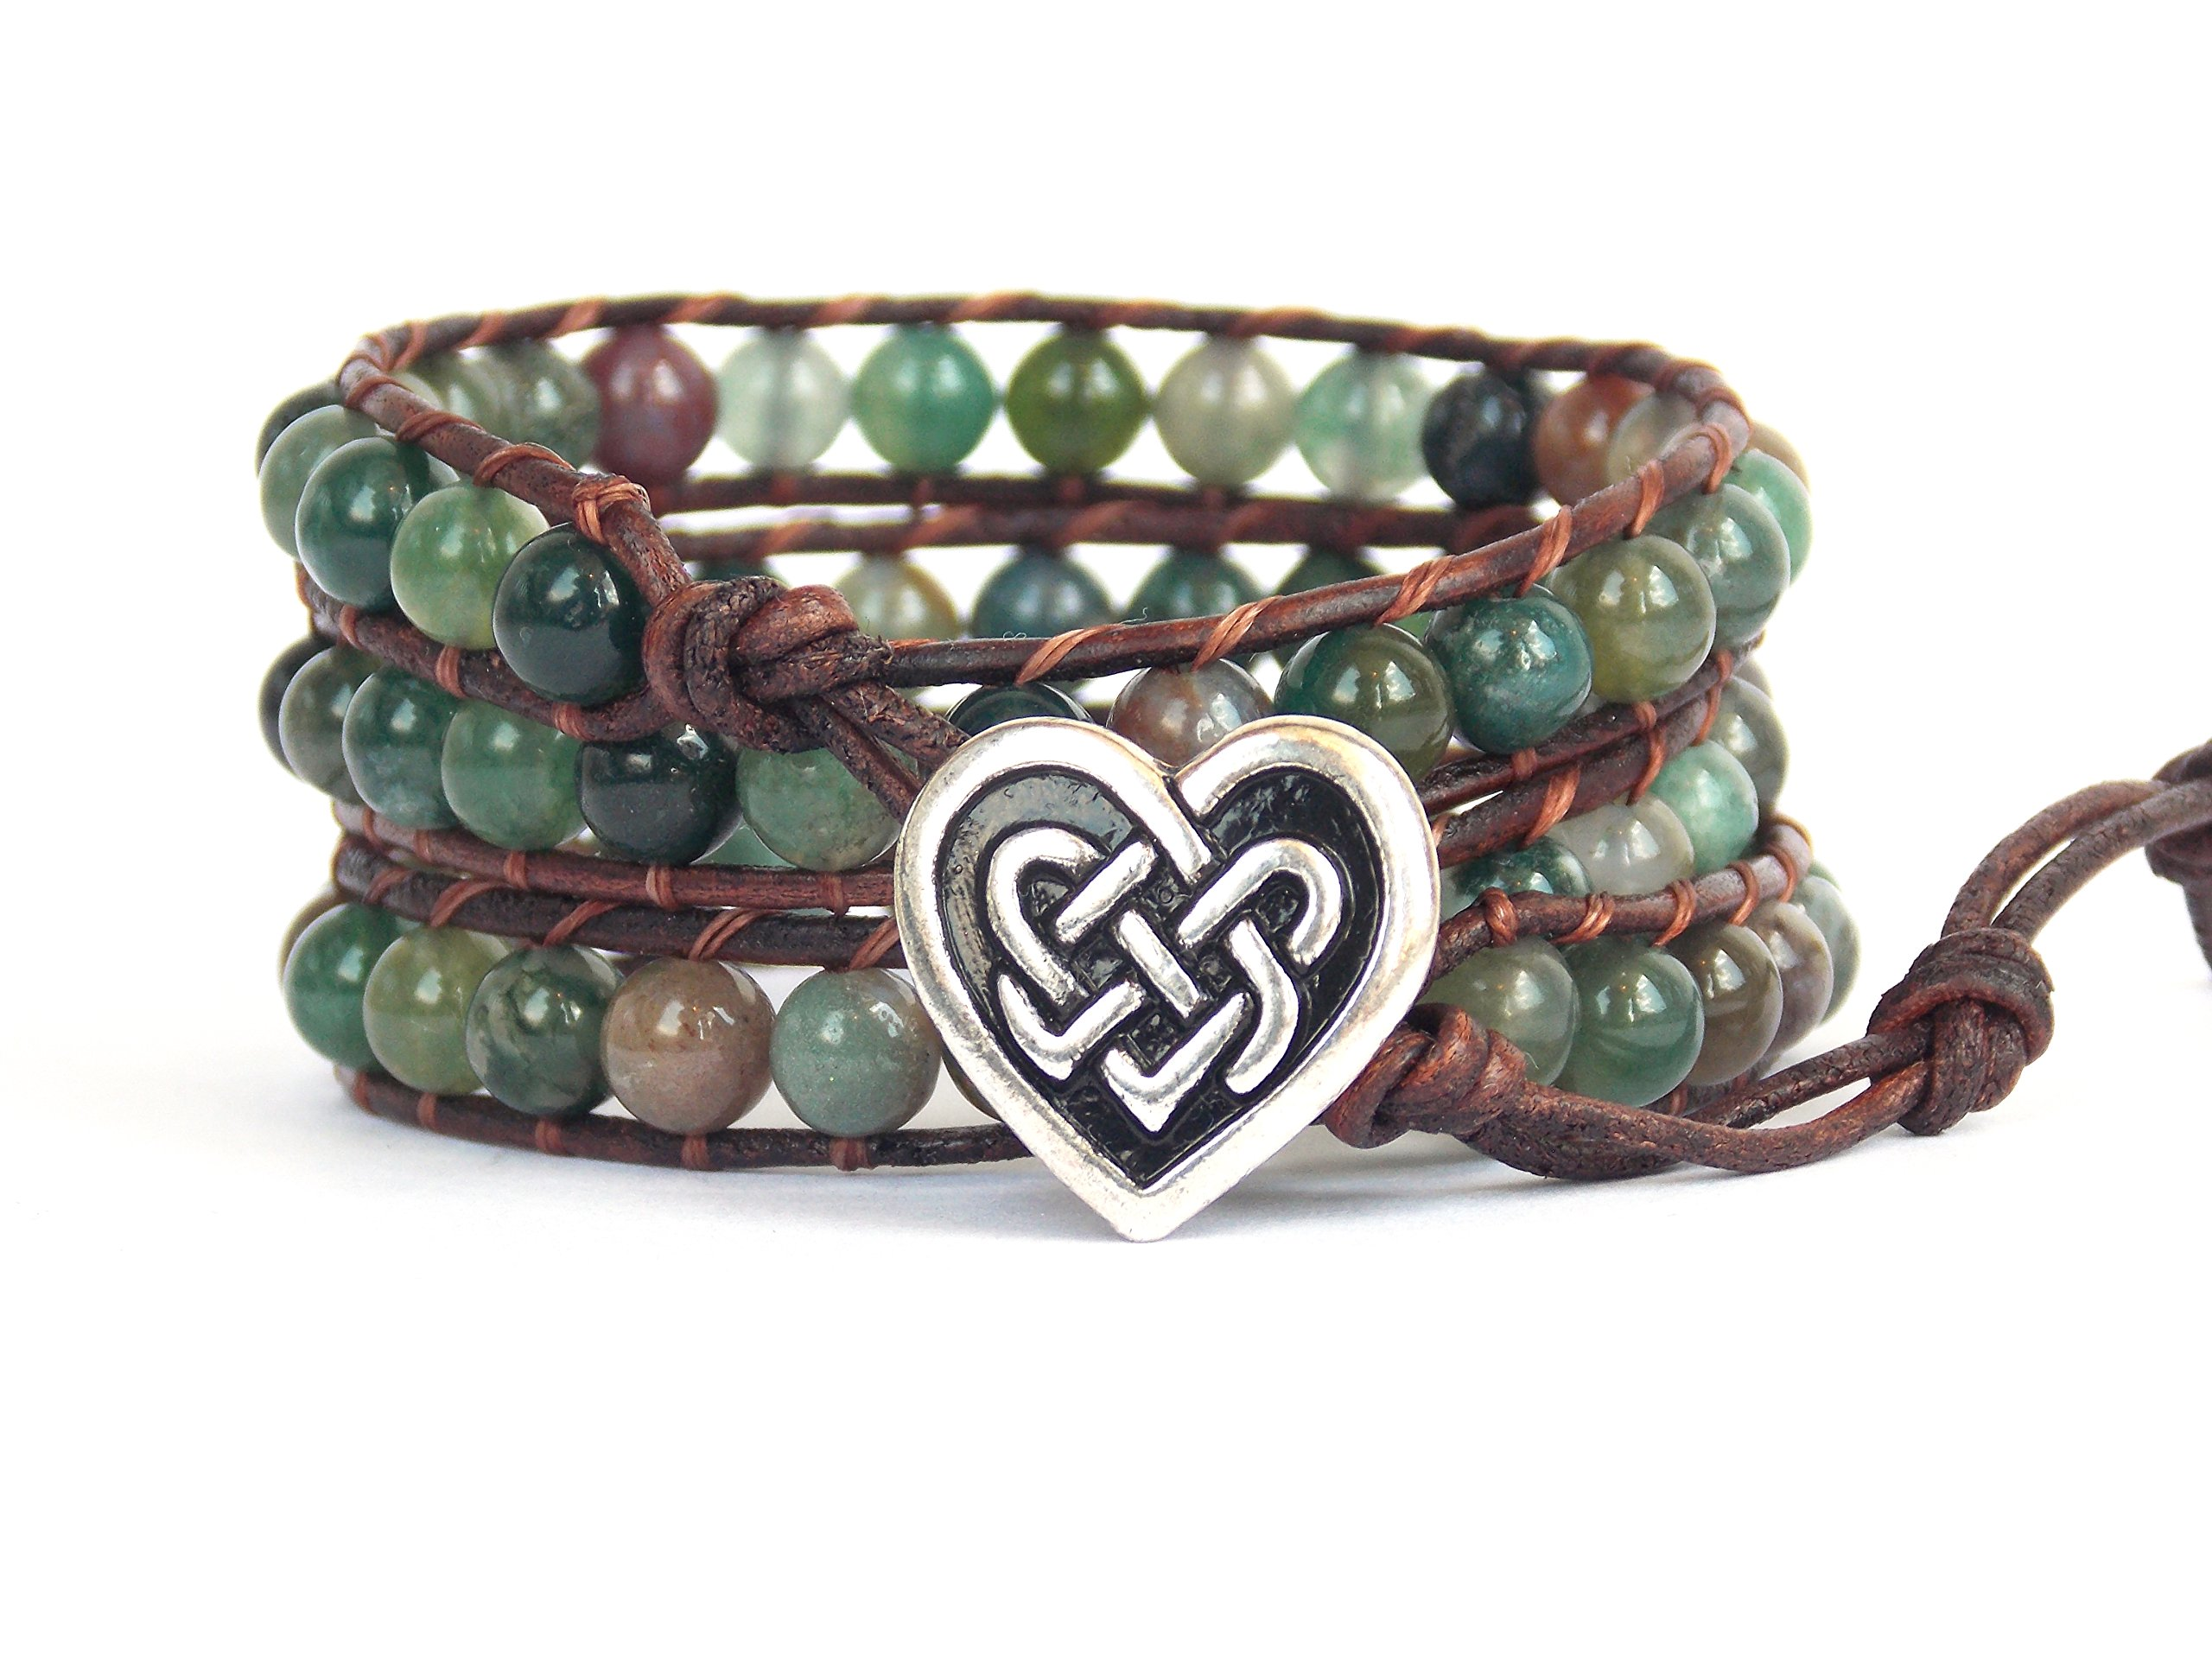 Celtic Knot Bracelet with Heart Button Leather Indian Agate Beaded Wrap